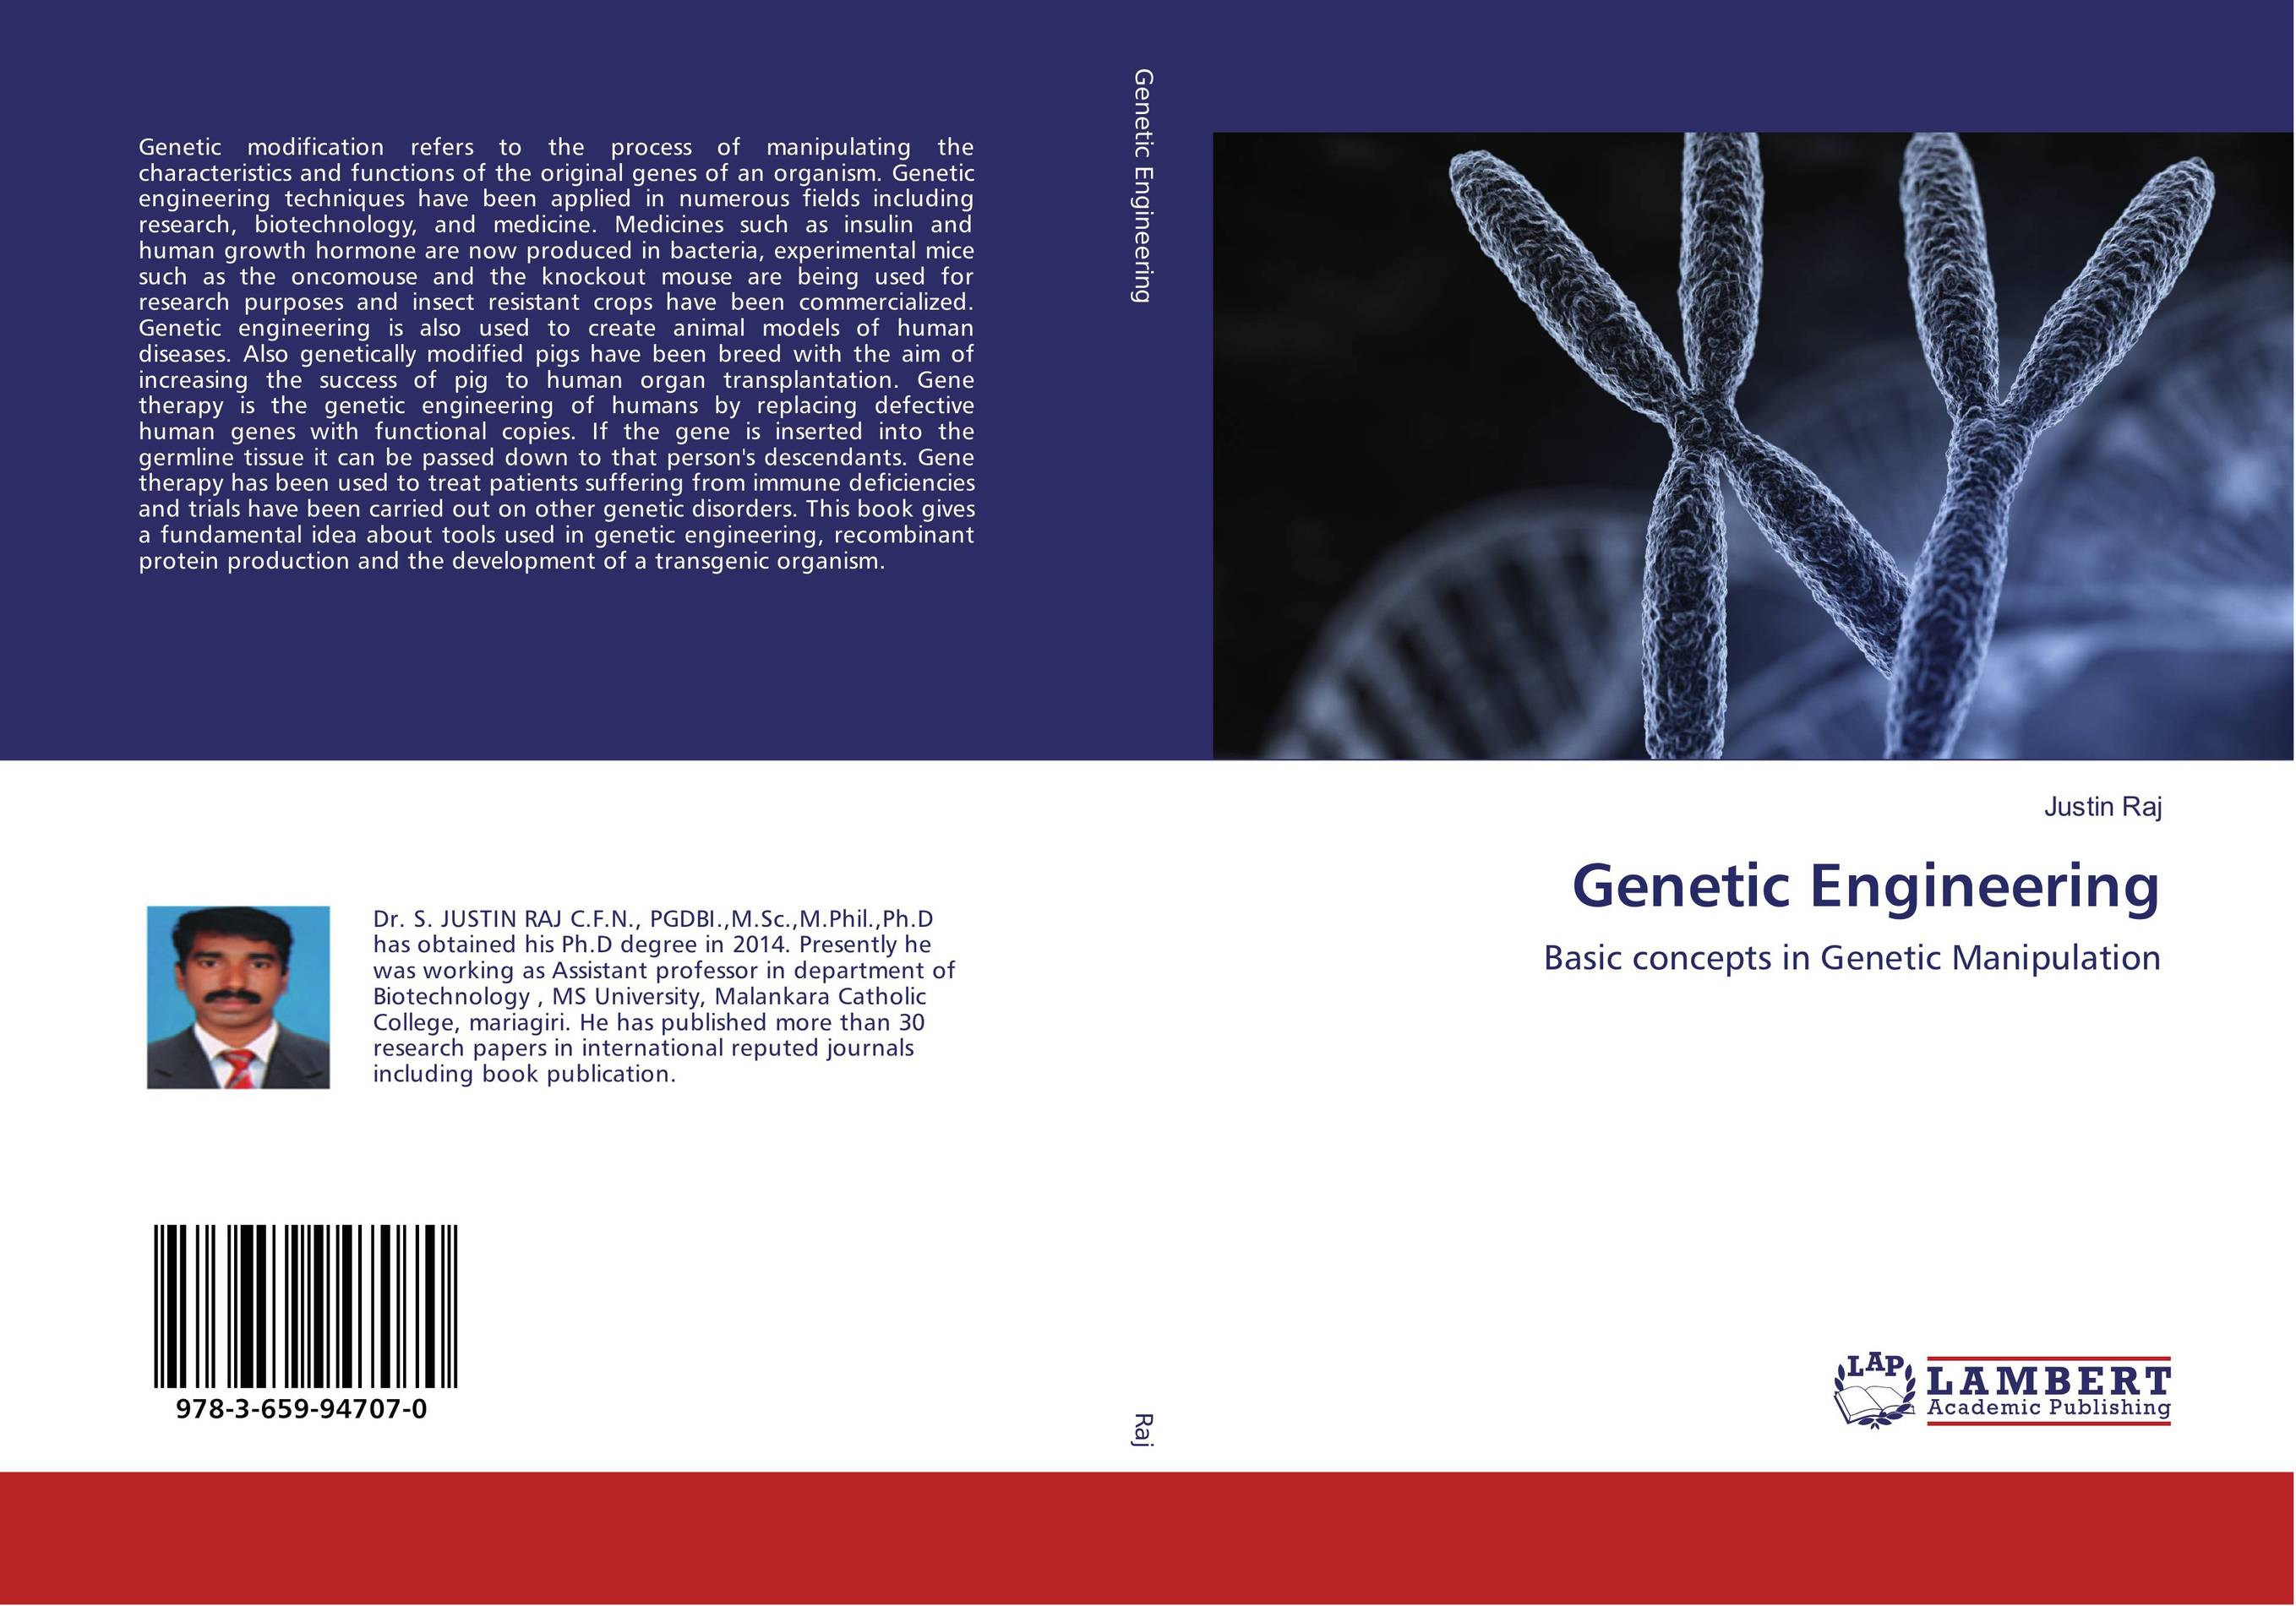 an analysis of use of genetics in insurance and impliations Summary currently, there is debate about life insurance companies' use of genetic information for assessing applicants in his early 20s, james (pseudonym) was denied full life insurance cover because he revealed that he had discussed genetic testing with a genetic counsellor.